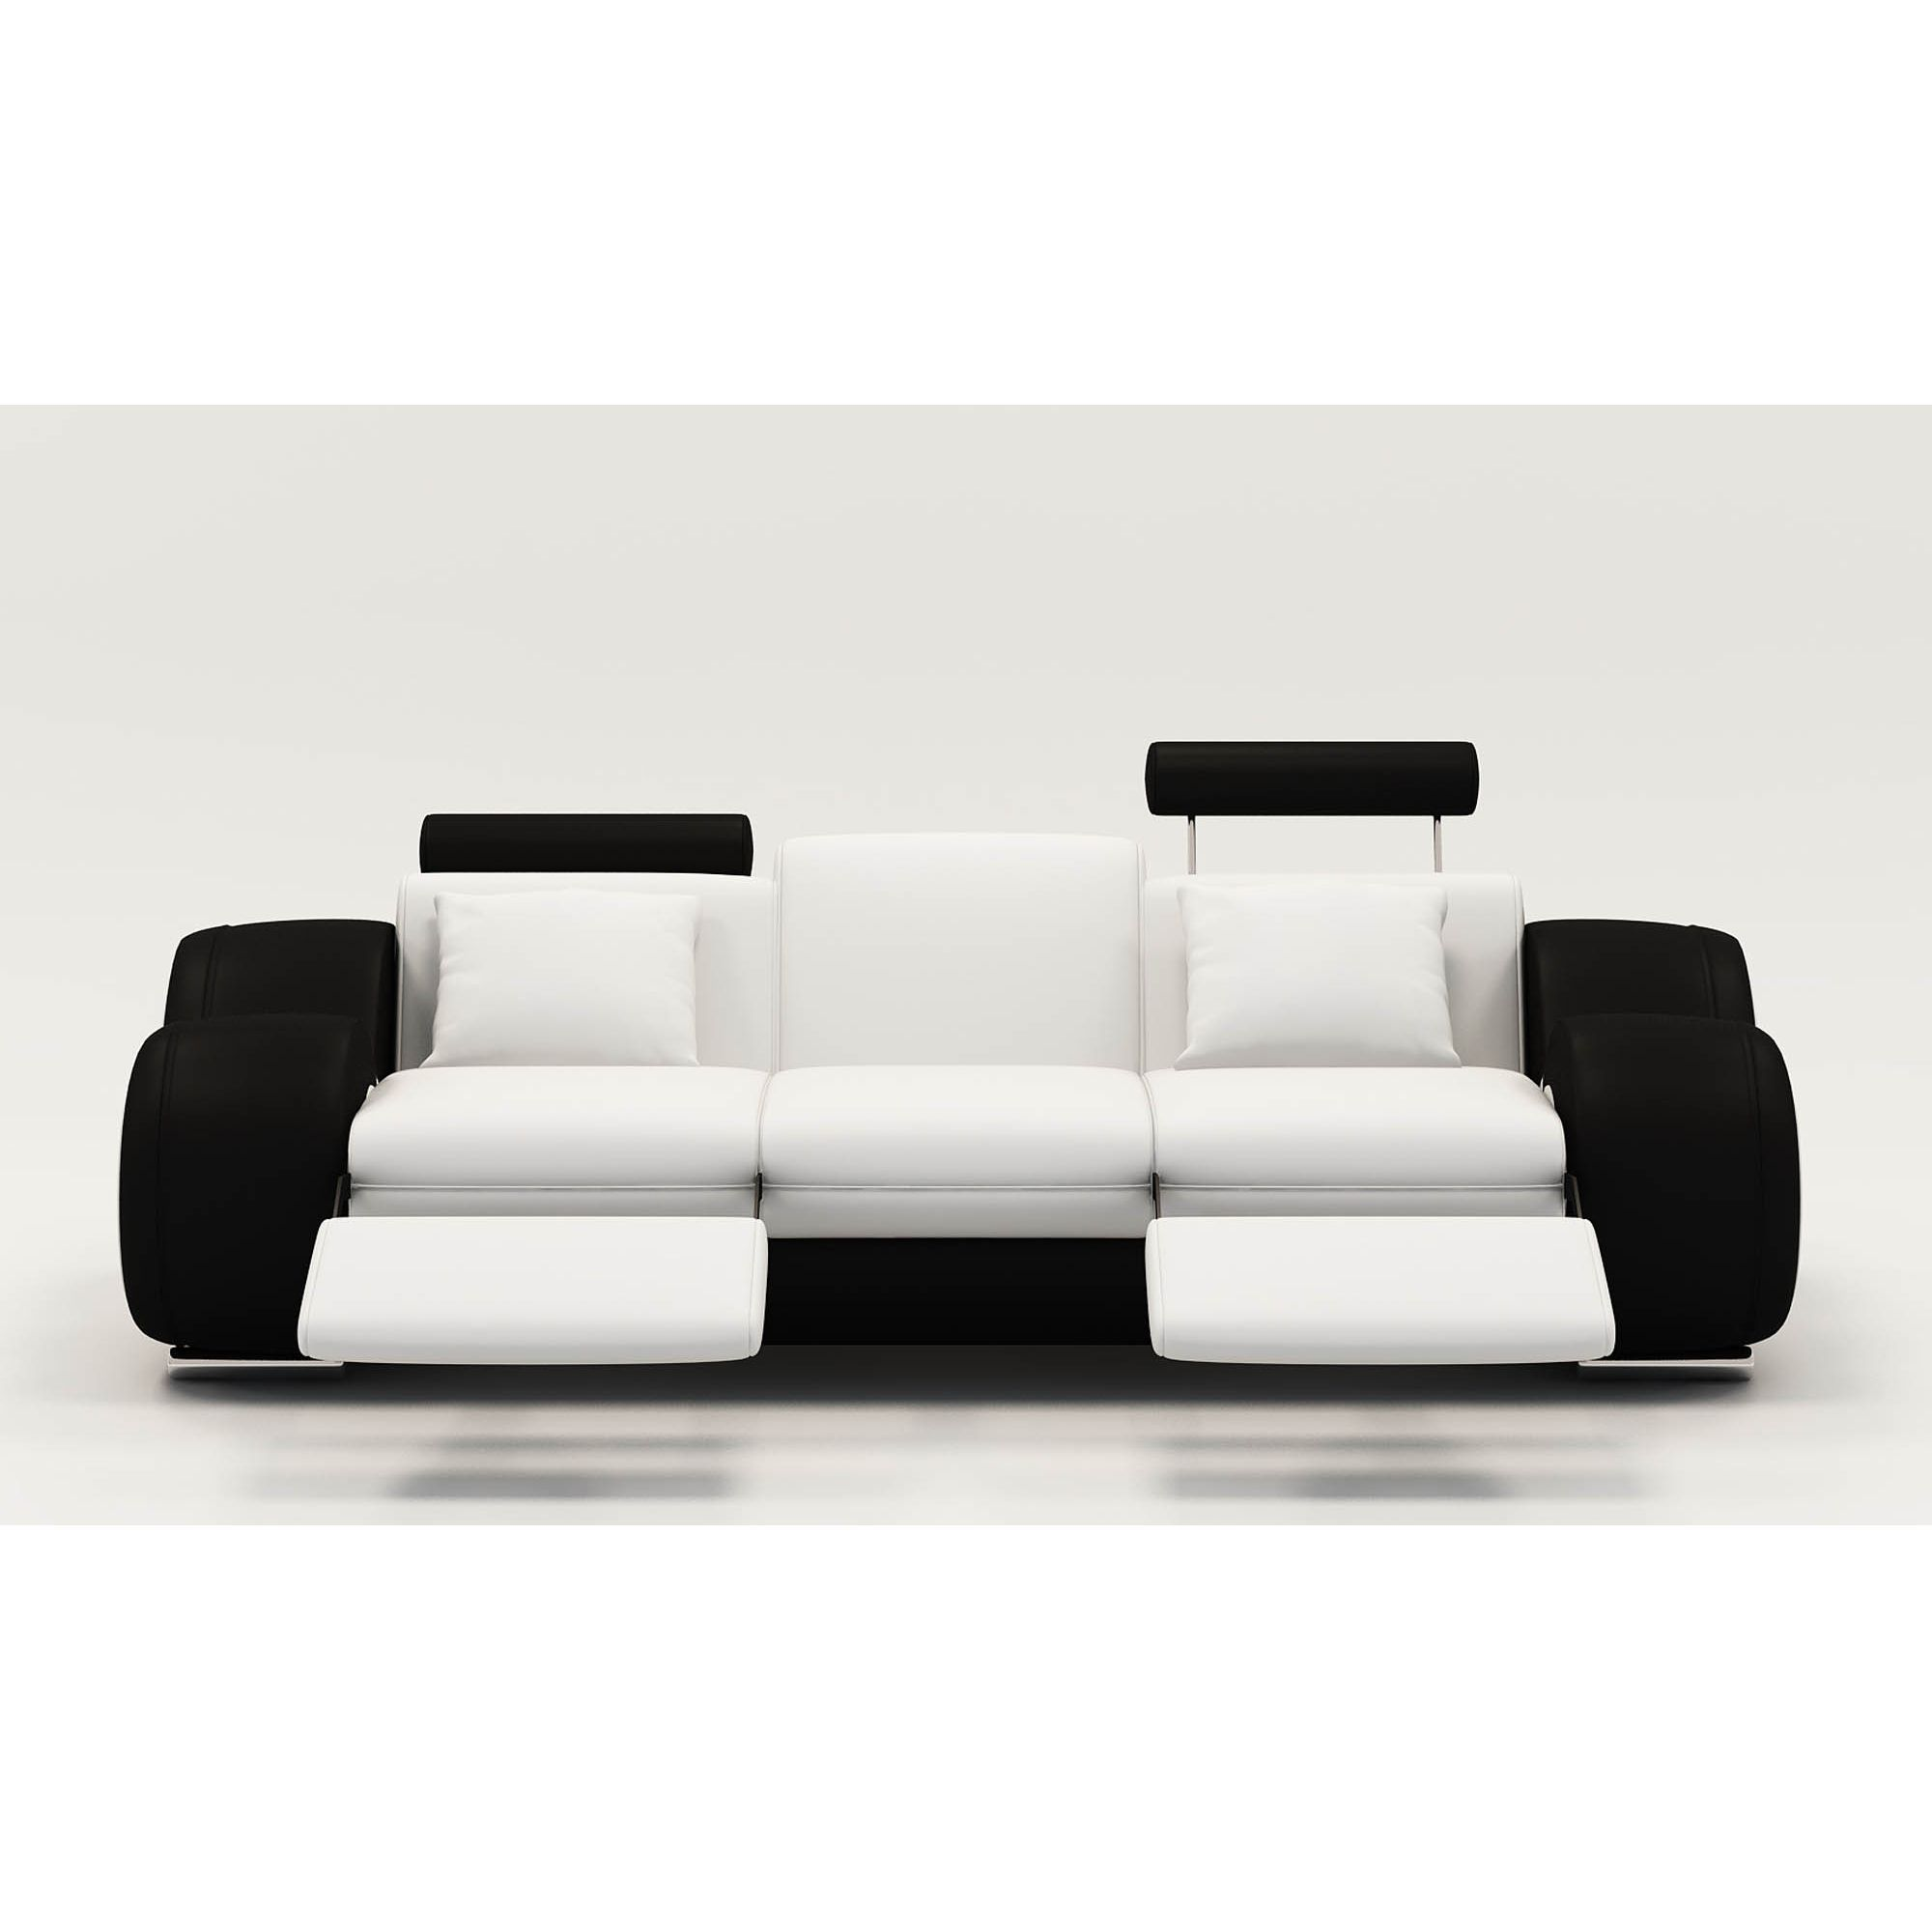 Deco in paris canape design 3 places cuir noir et blanc - Canape 3 places design ...